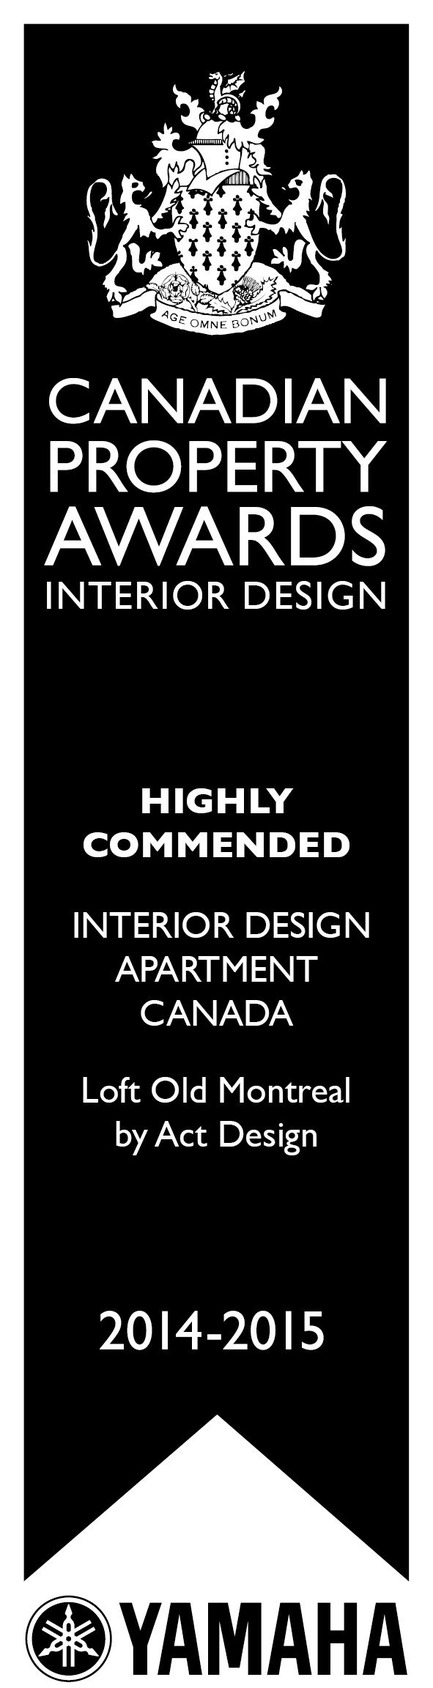 Press kit | 1179-01 - Press release | ActDesign is honoured by the prestigious International Property Awards for the interior design of a loft in Old Montreal - ActDesign - Residential Interior Design - Photo credit: -